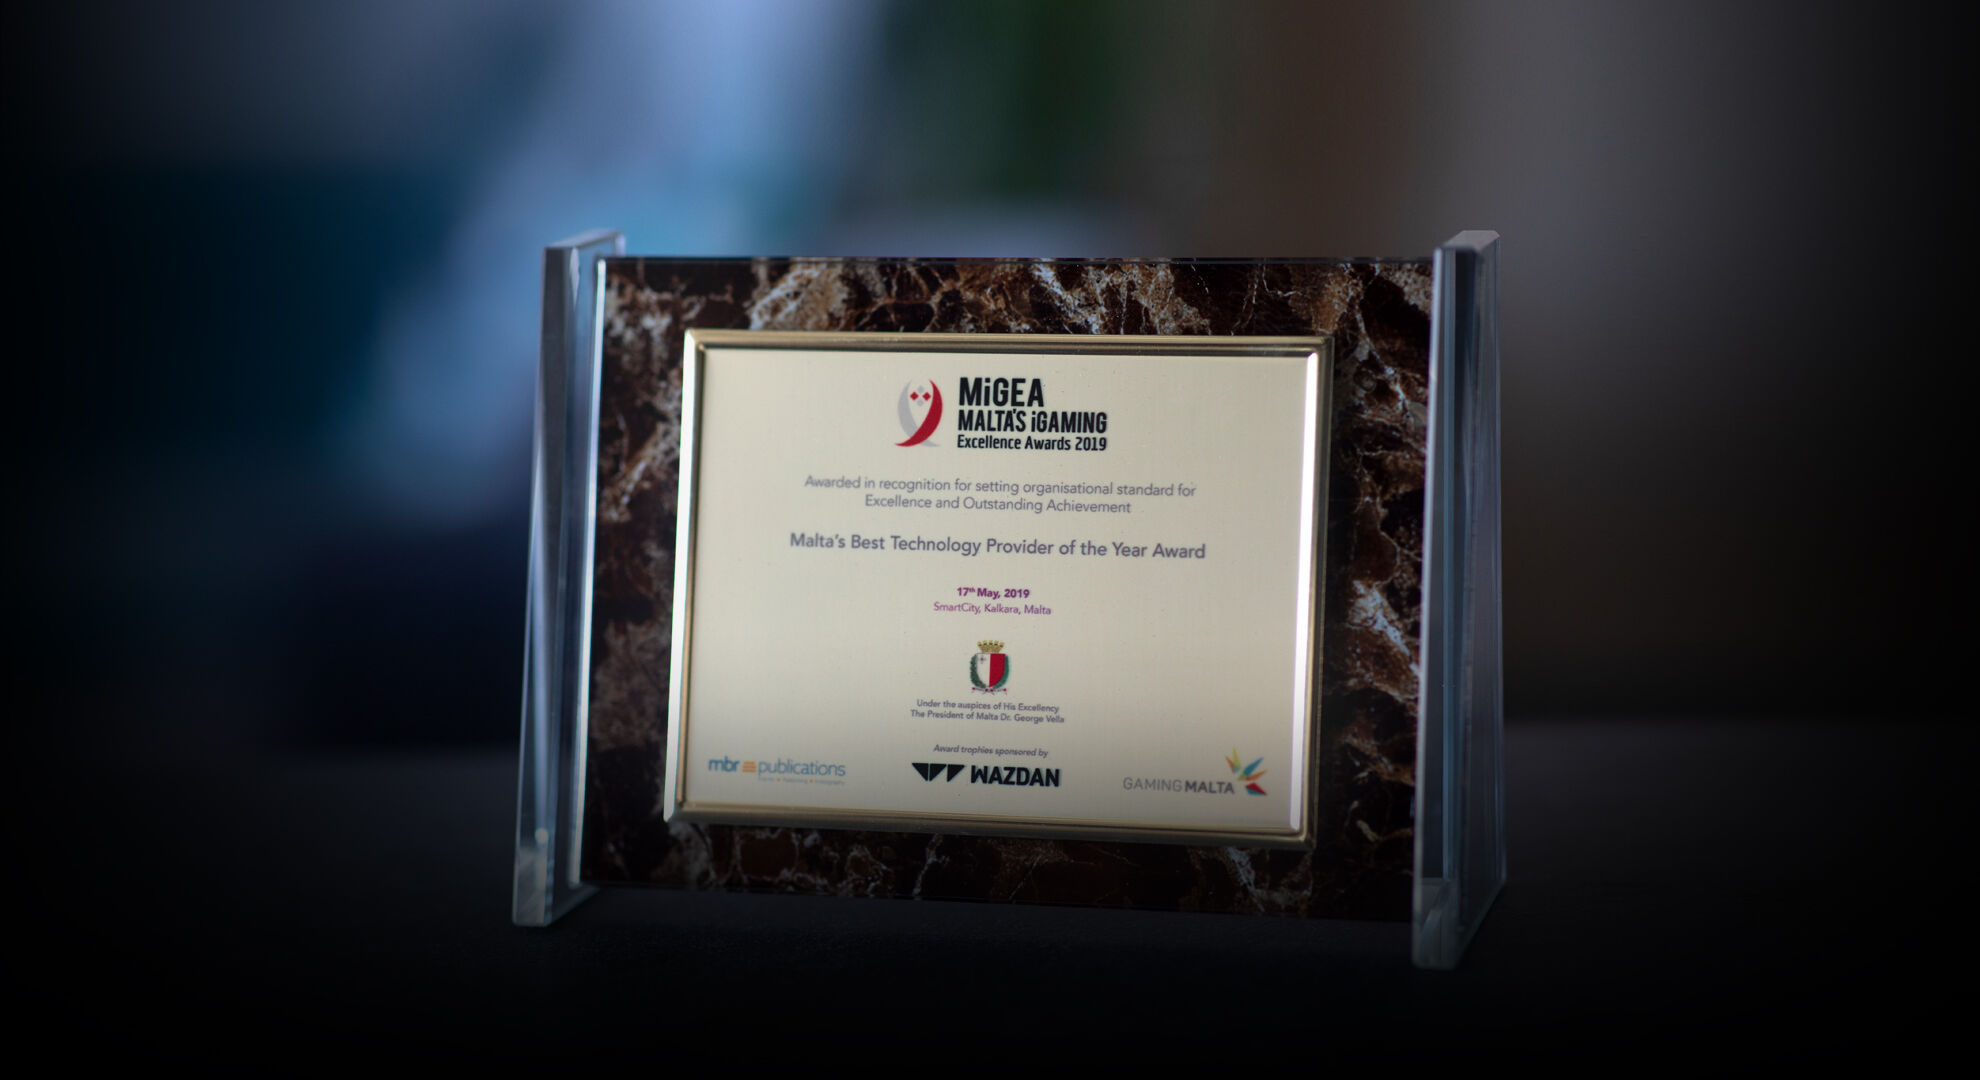 Malta's Best Technology Provider of the Year 2019